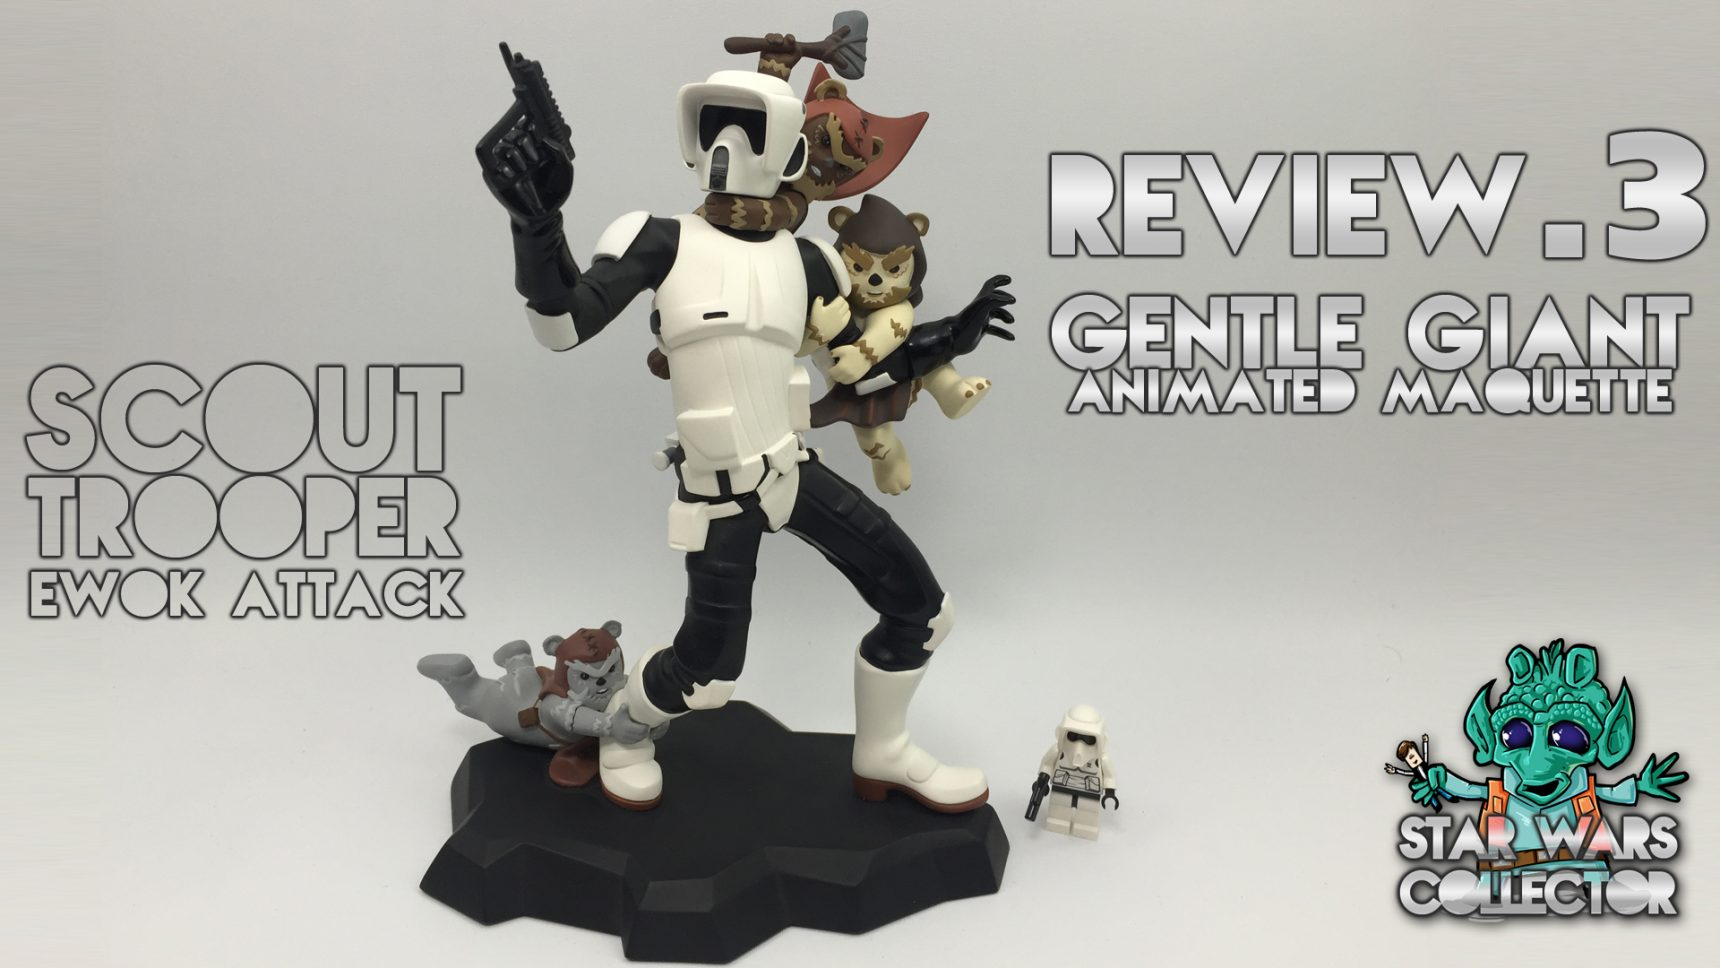 #review: Gentle Giant Scout Trooper Animated Maquette – Video